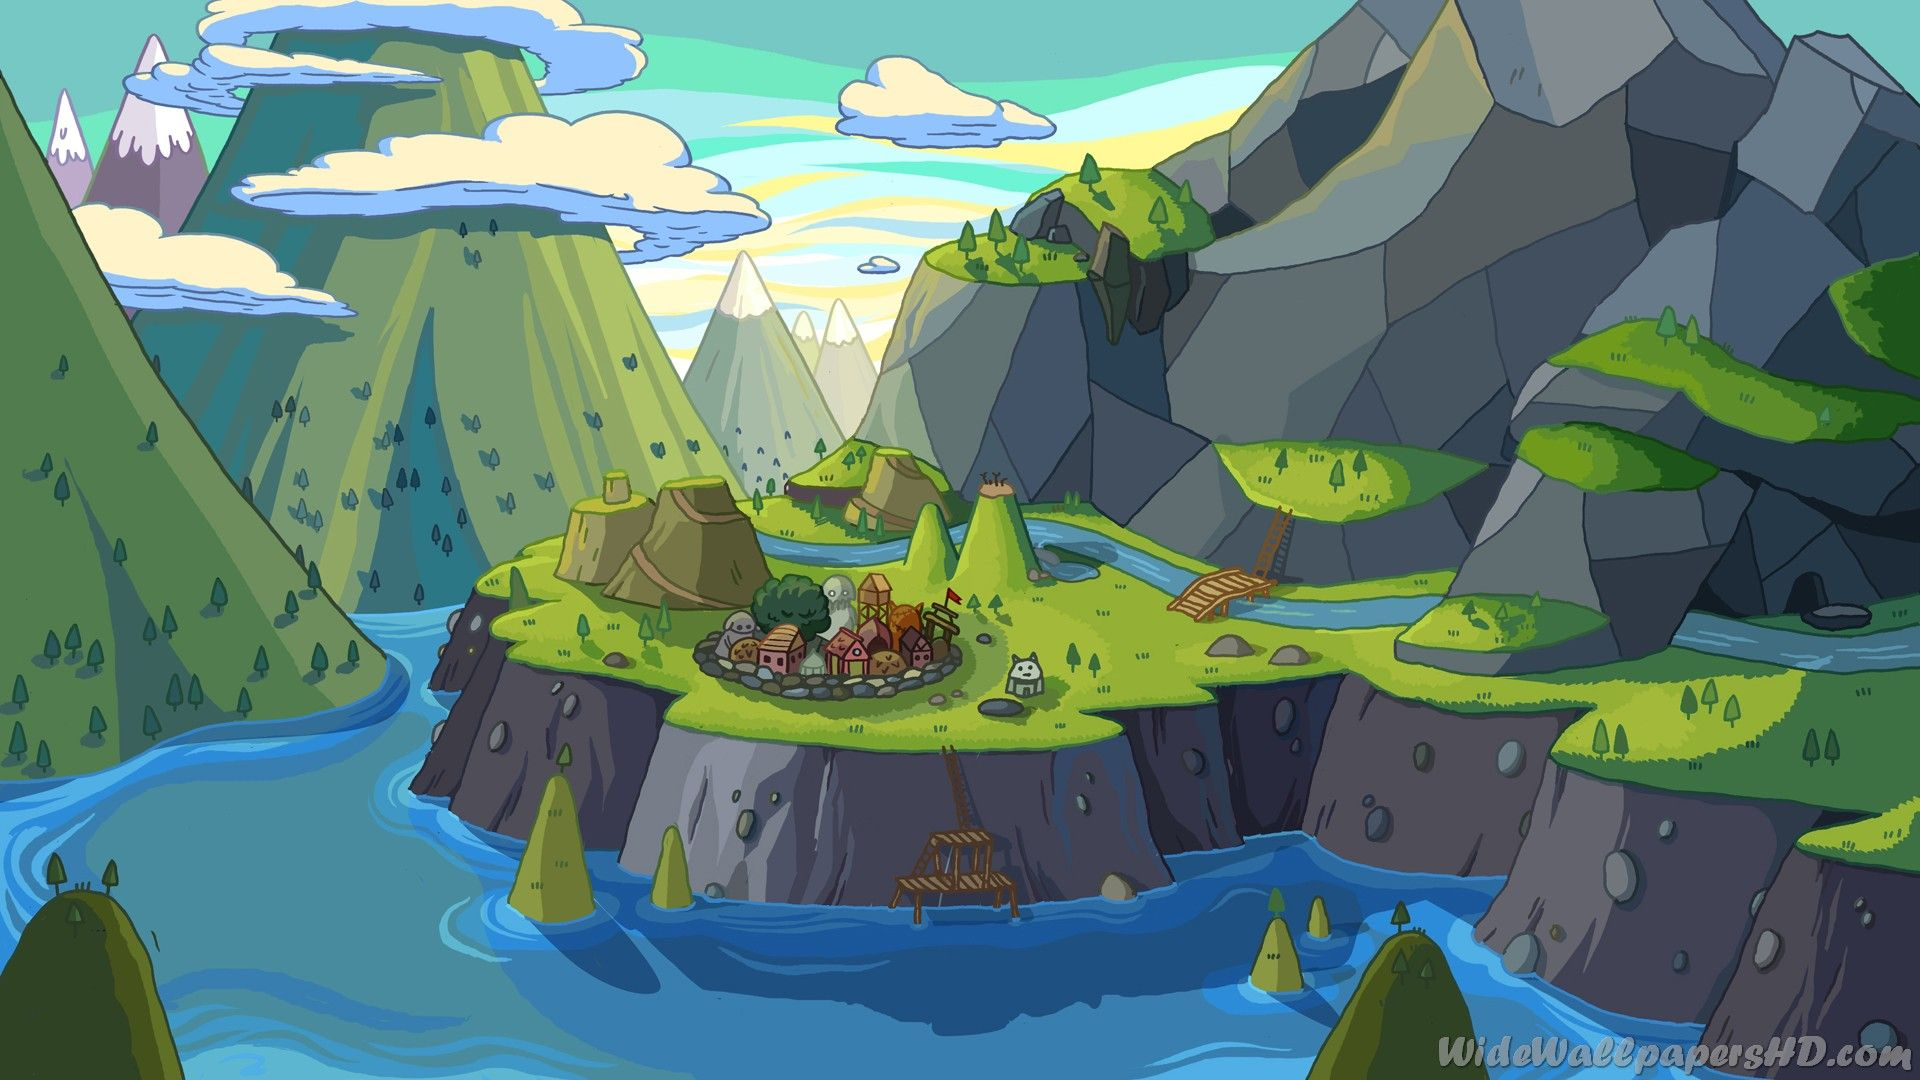 River Adventure Time 1080p Backgrounds And Wallpapers Hd Tatuaje Hora De Aventuras Ilustracion De Agua Jake De Adventure Time